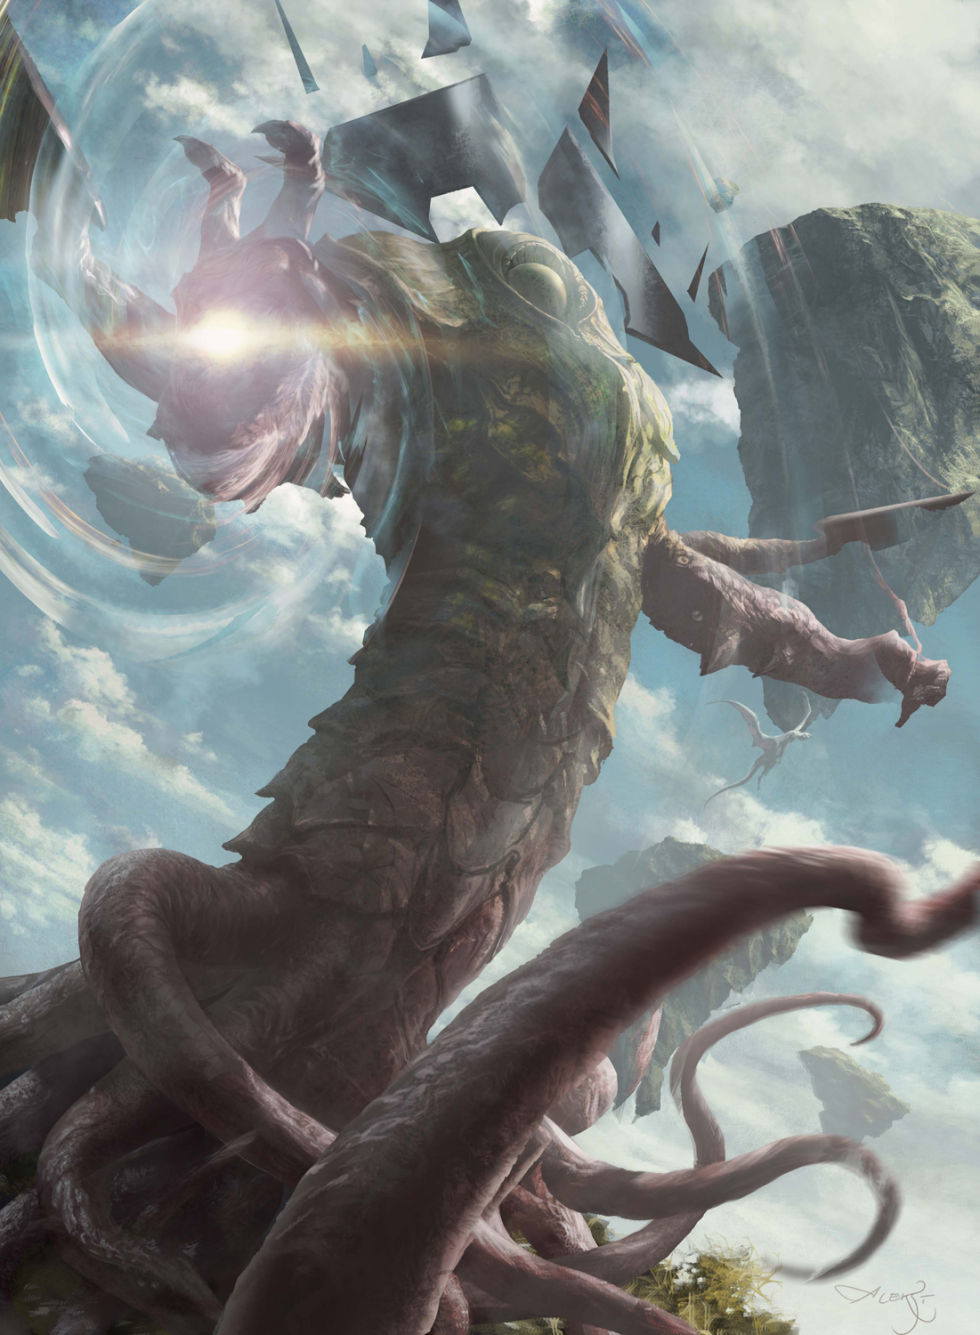 Kozilek, the Big Bad of this <em>Magic</em> expansion.